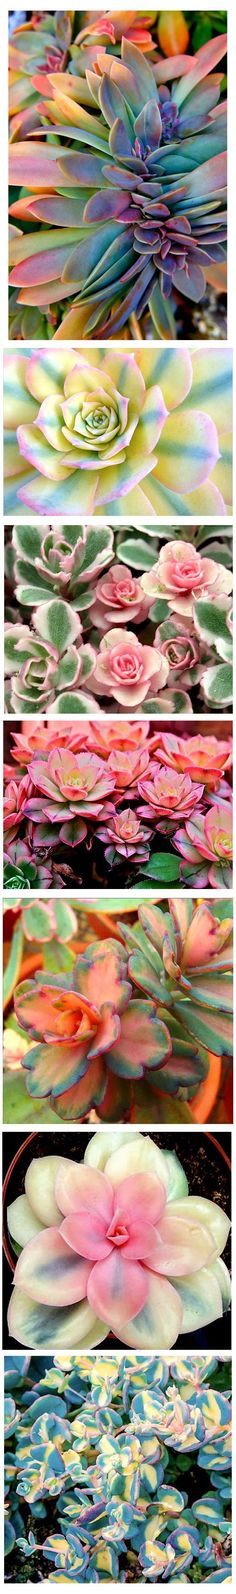 10 Wonderful and Cheap DIY Idea for Your Garden 8 (desert landscape backyard cactus) Succulent Gardening, Cacti And Succulents, Planting Succulents, Container Gardening, Planting Flowers, Watercolor Succulents, Flowers Garden, Air Plants, Garden Plants